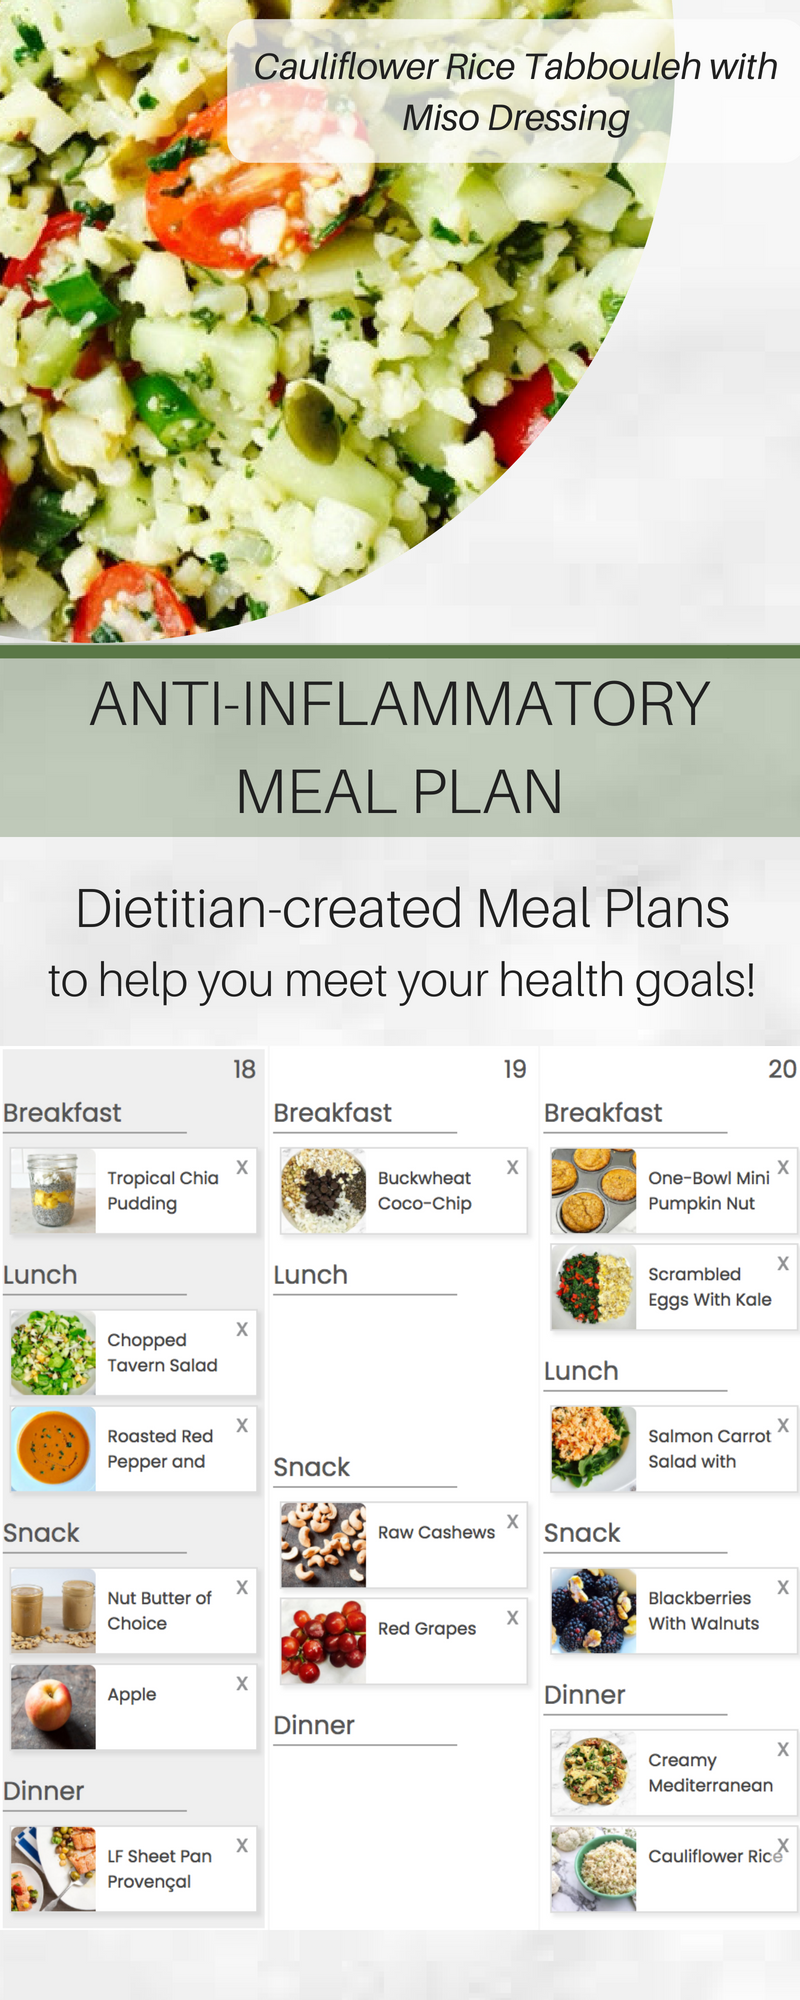 Registered dietitian diet plans